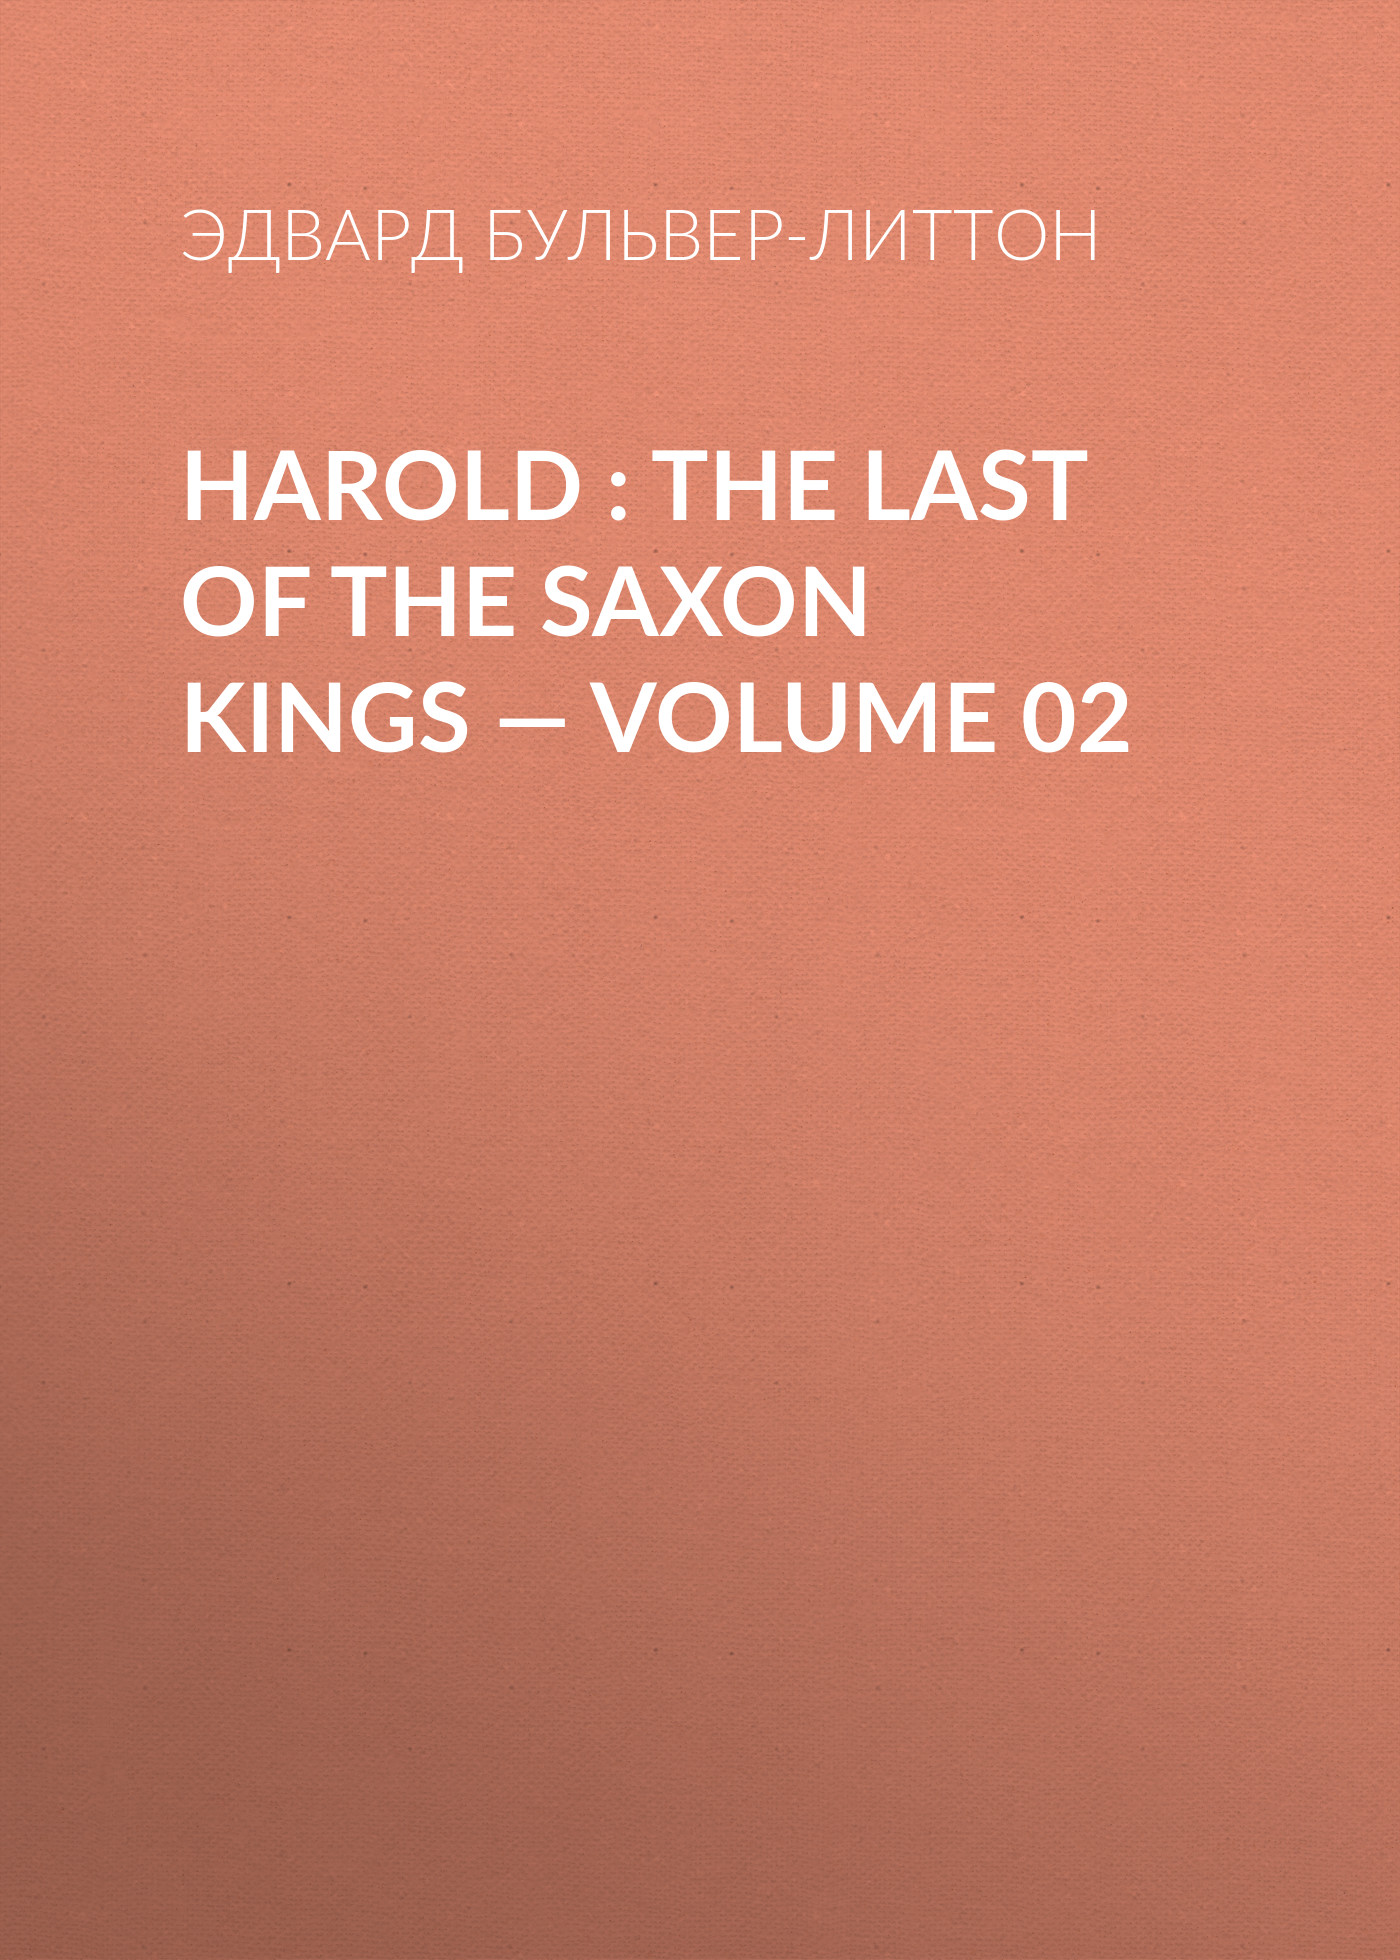 Эдвард Бульвер-Литтон Harold : the Last of the Saxon Kings — Volume 02 эдвард бульвер литтон harold the last of the saxon kings volume 06